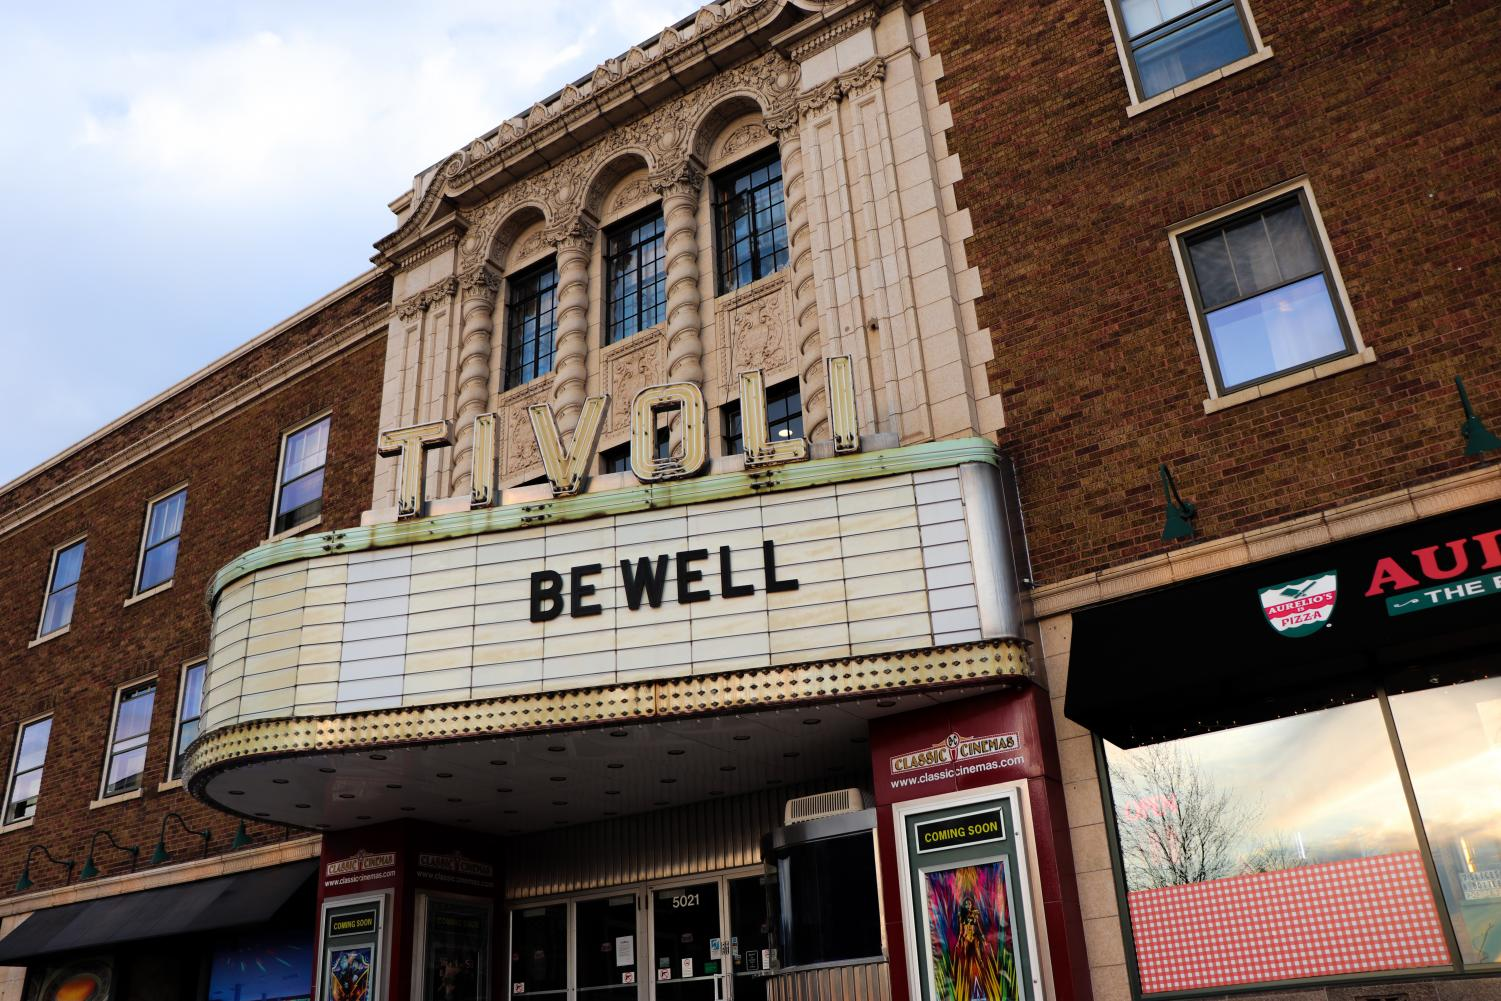 Constructed in 1928, the Tivoli Theatre in downtown Downers Grove is a community landmark and signature attraction among residents. The current facade of the theatre is a stark contrast to its typical lively marquee displaying nightly movie titles. Now desolate and lifeless, the Tivoli presents a singular message: be well.